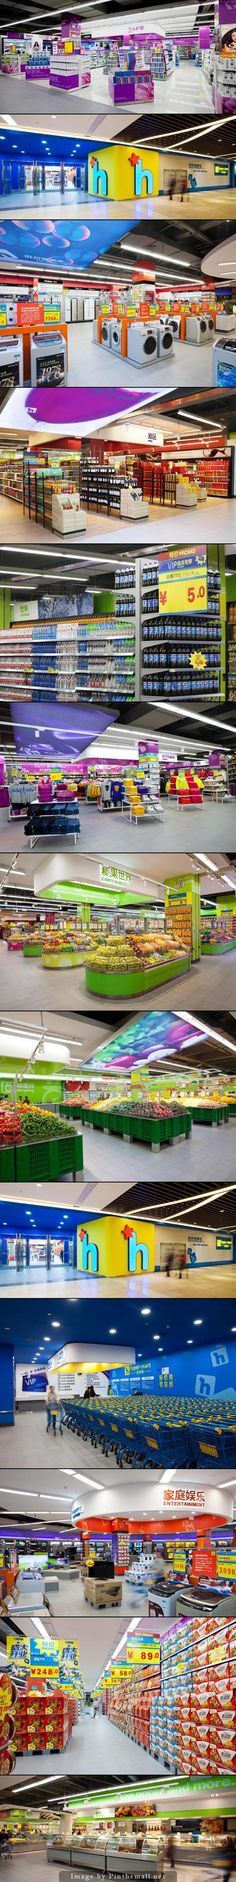 Hyper-mart is the hypermarket format of Bubugao, headquartered in Hunan province in central china. - created on 2014-09-14 11:36:27